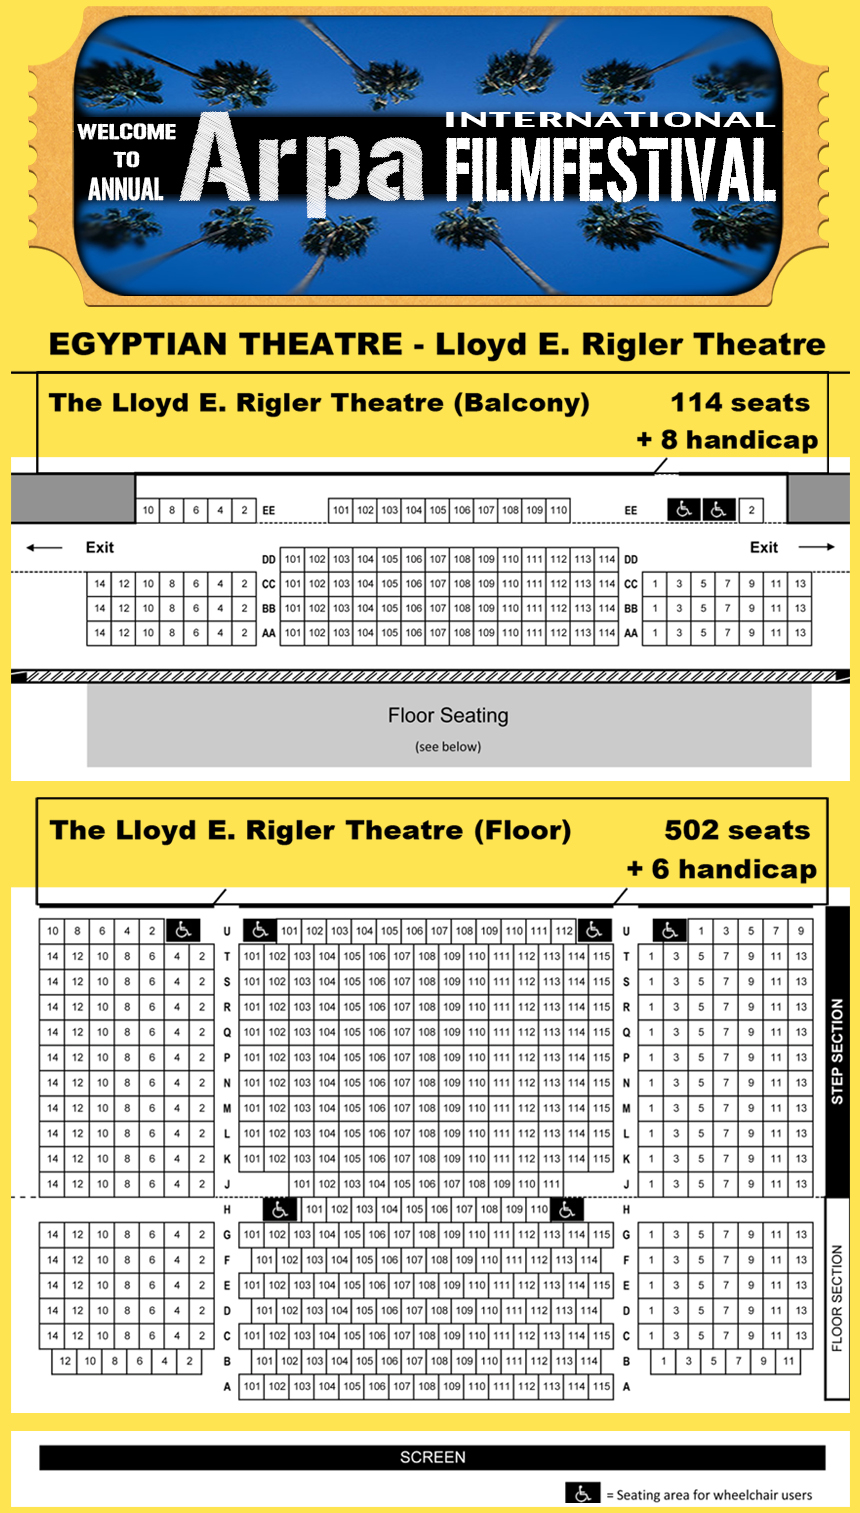 arpa_film_festival_seating_chart